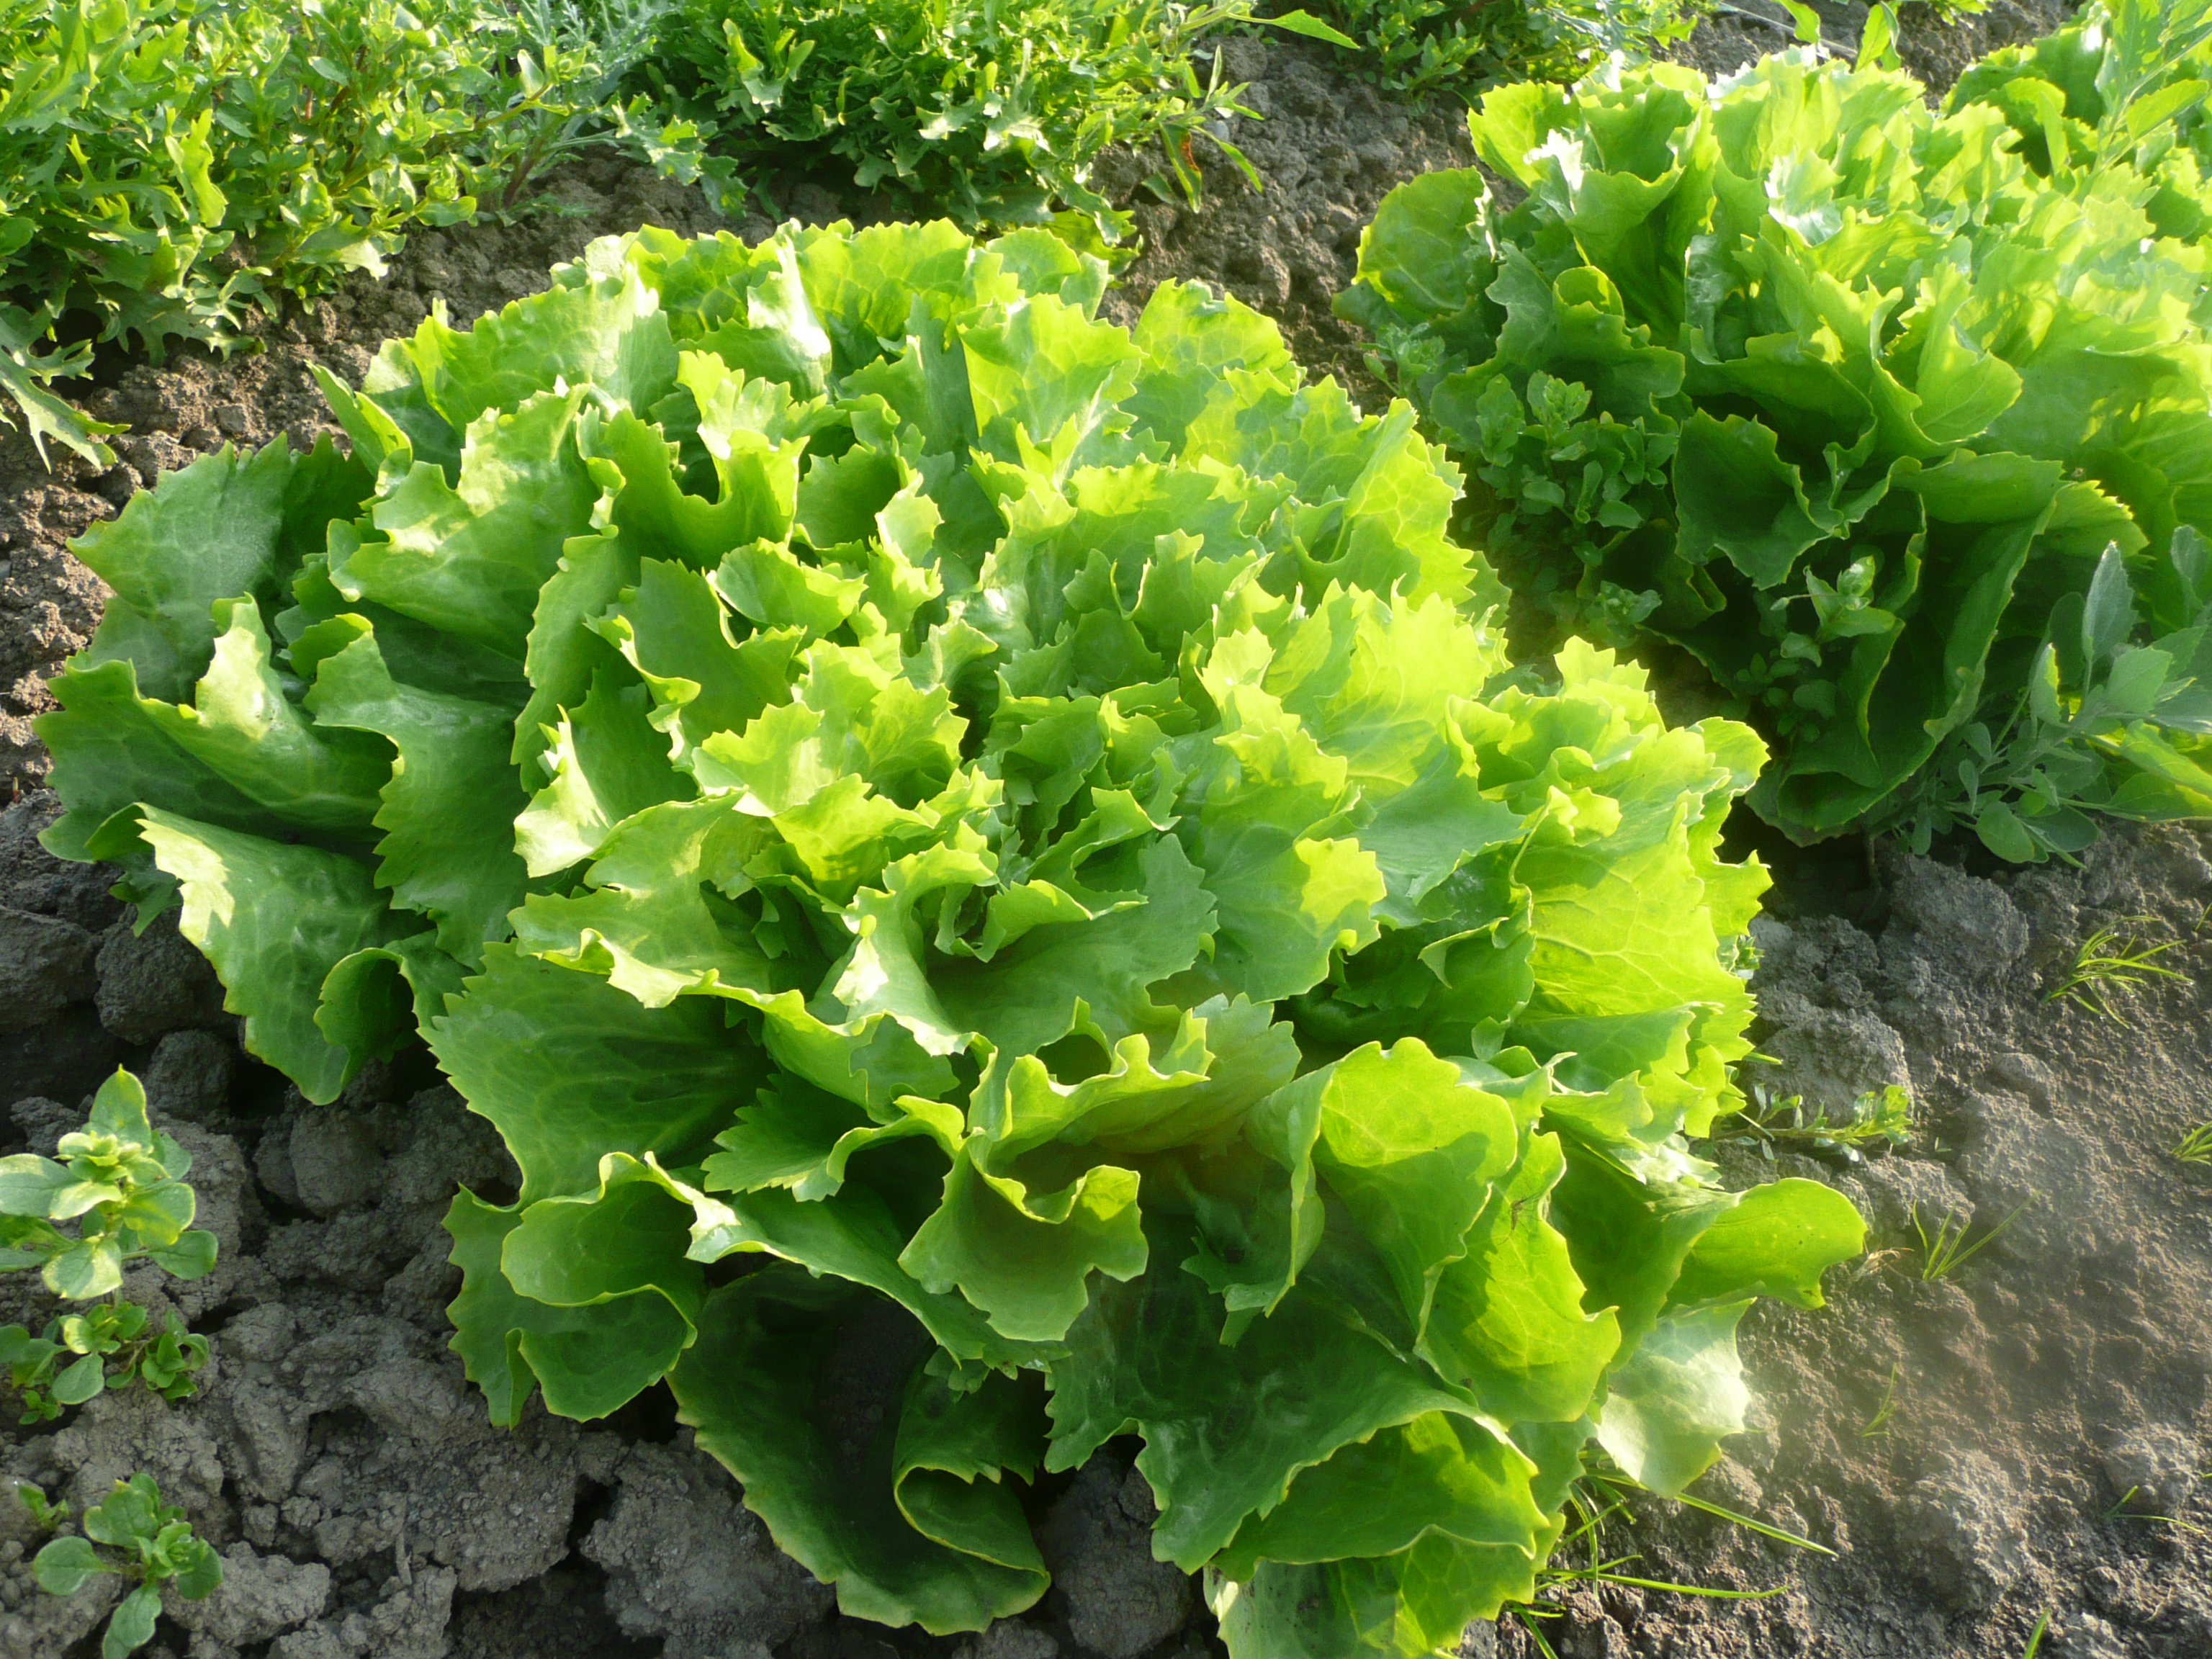 Lettuce in the field